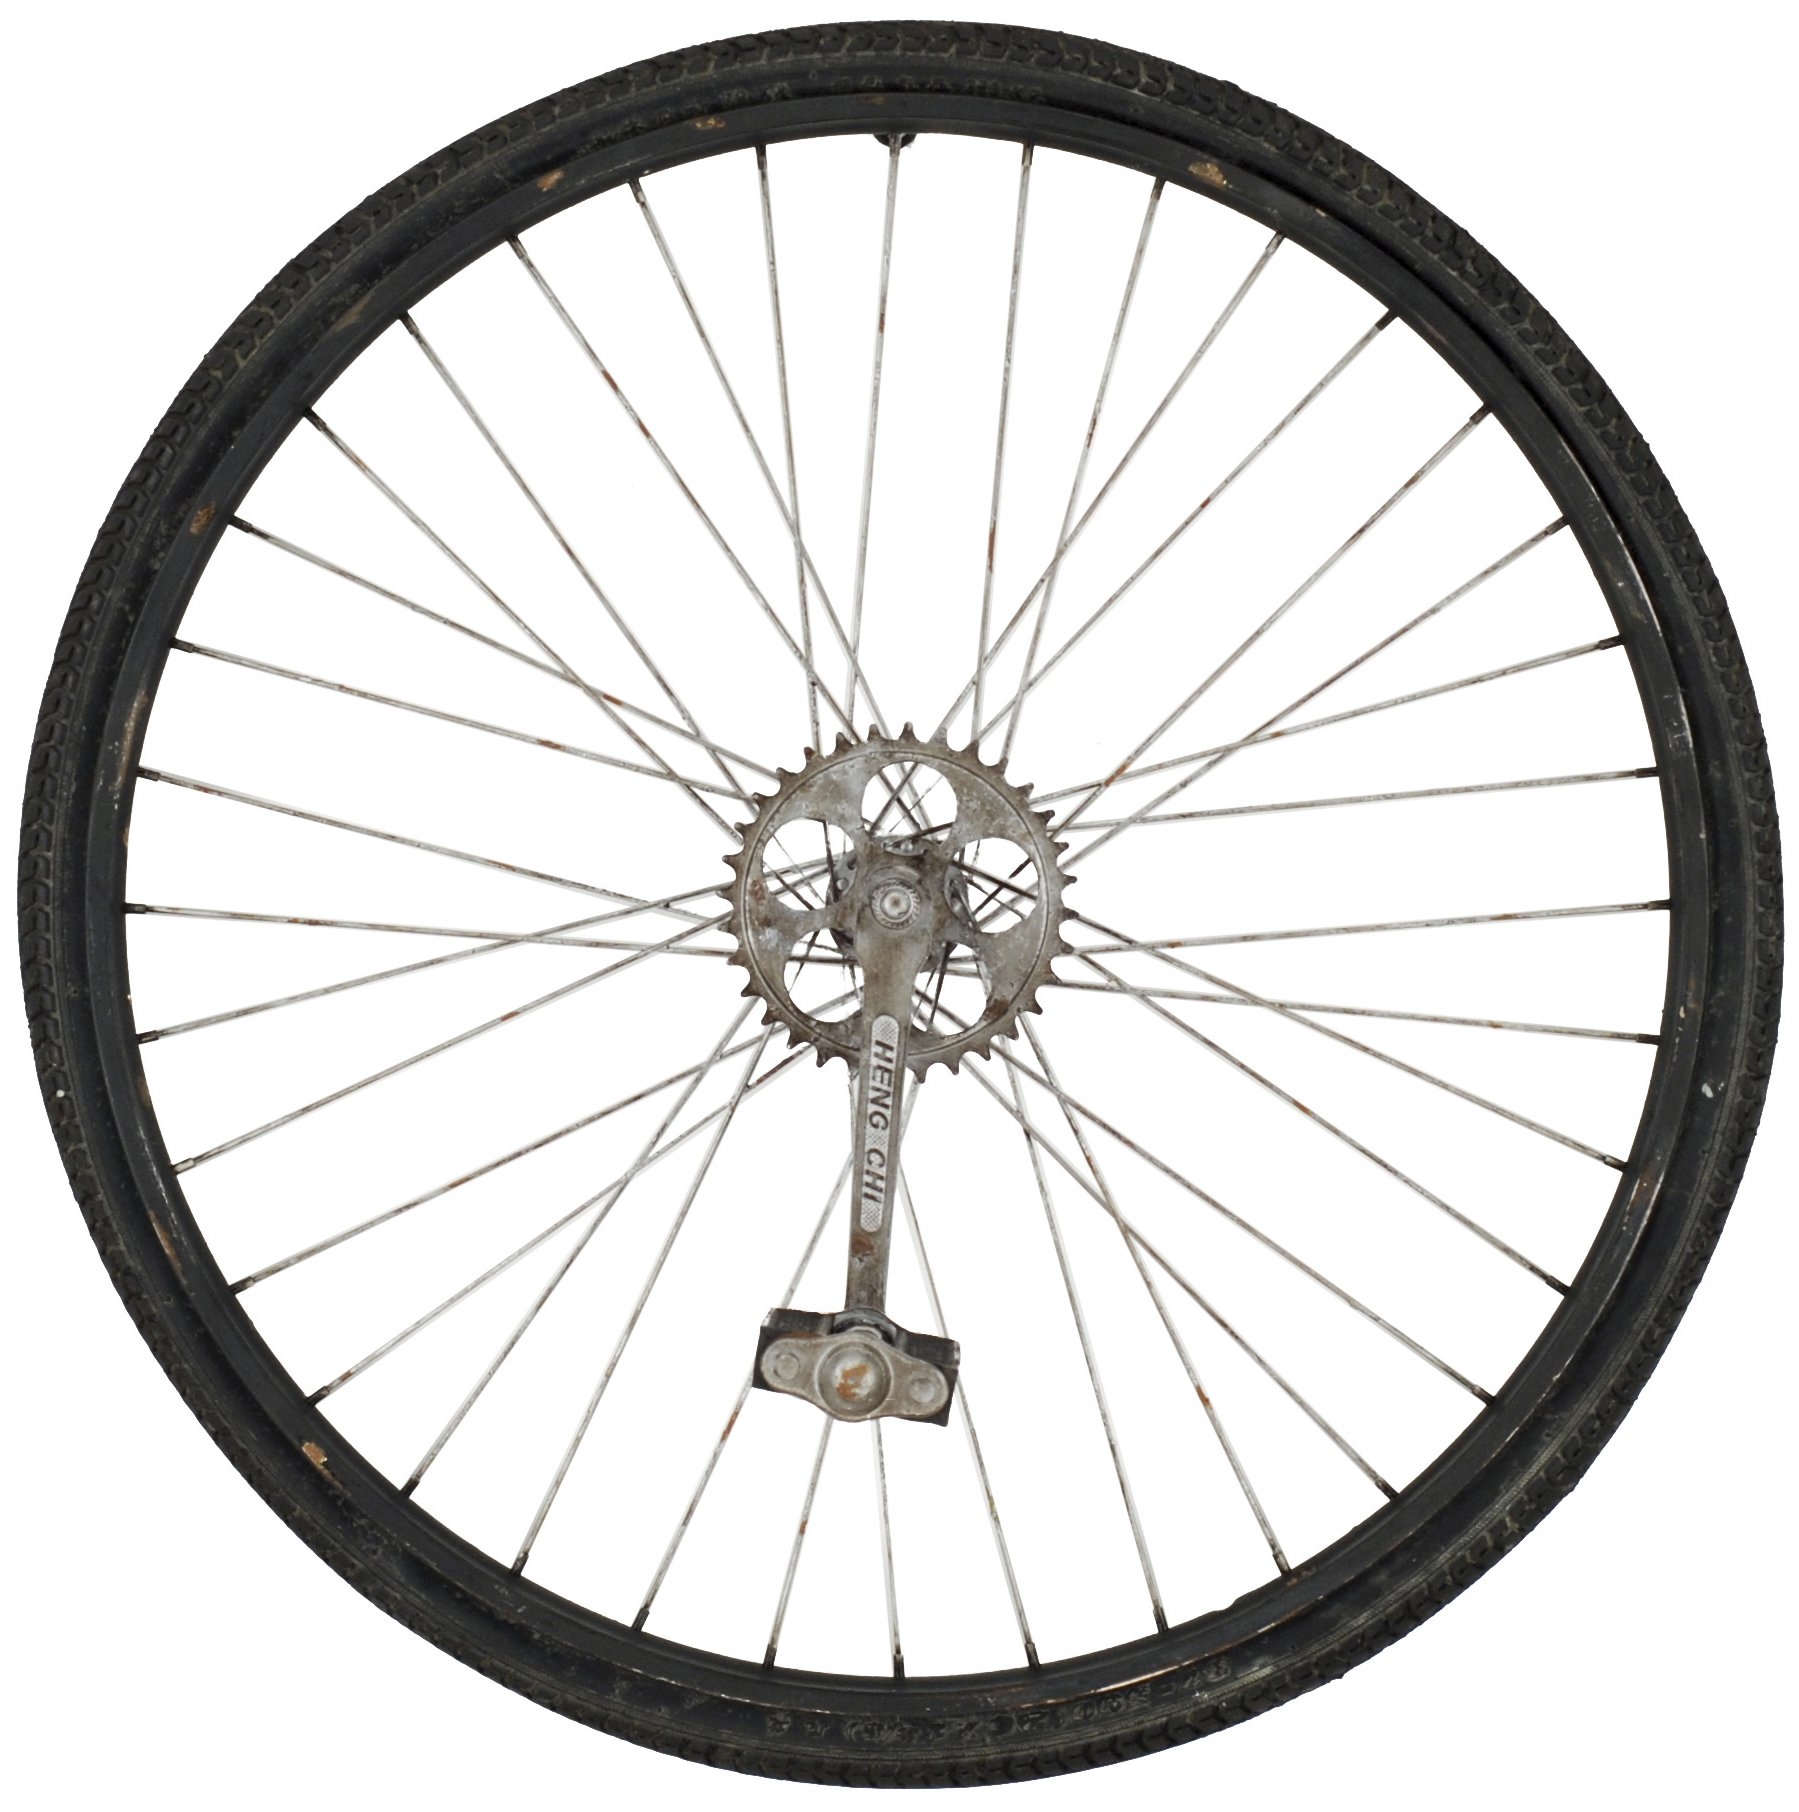 Paragon picture gallery 9801 bicycle wheel modern for Bicycle wheel wall art